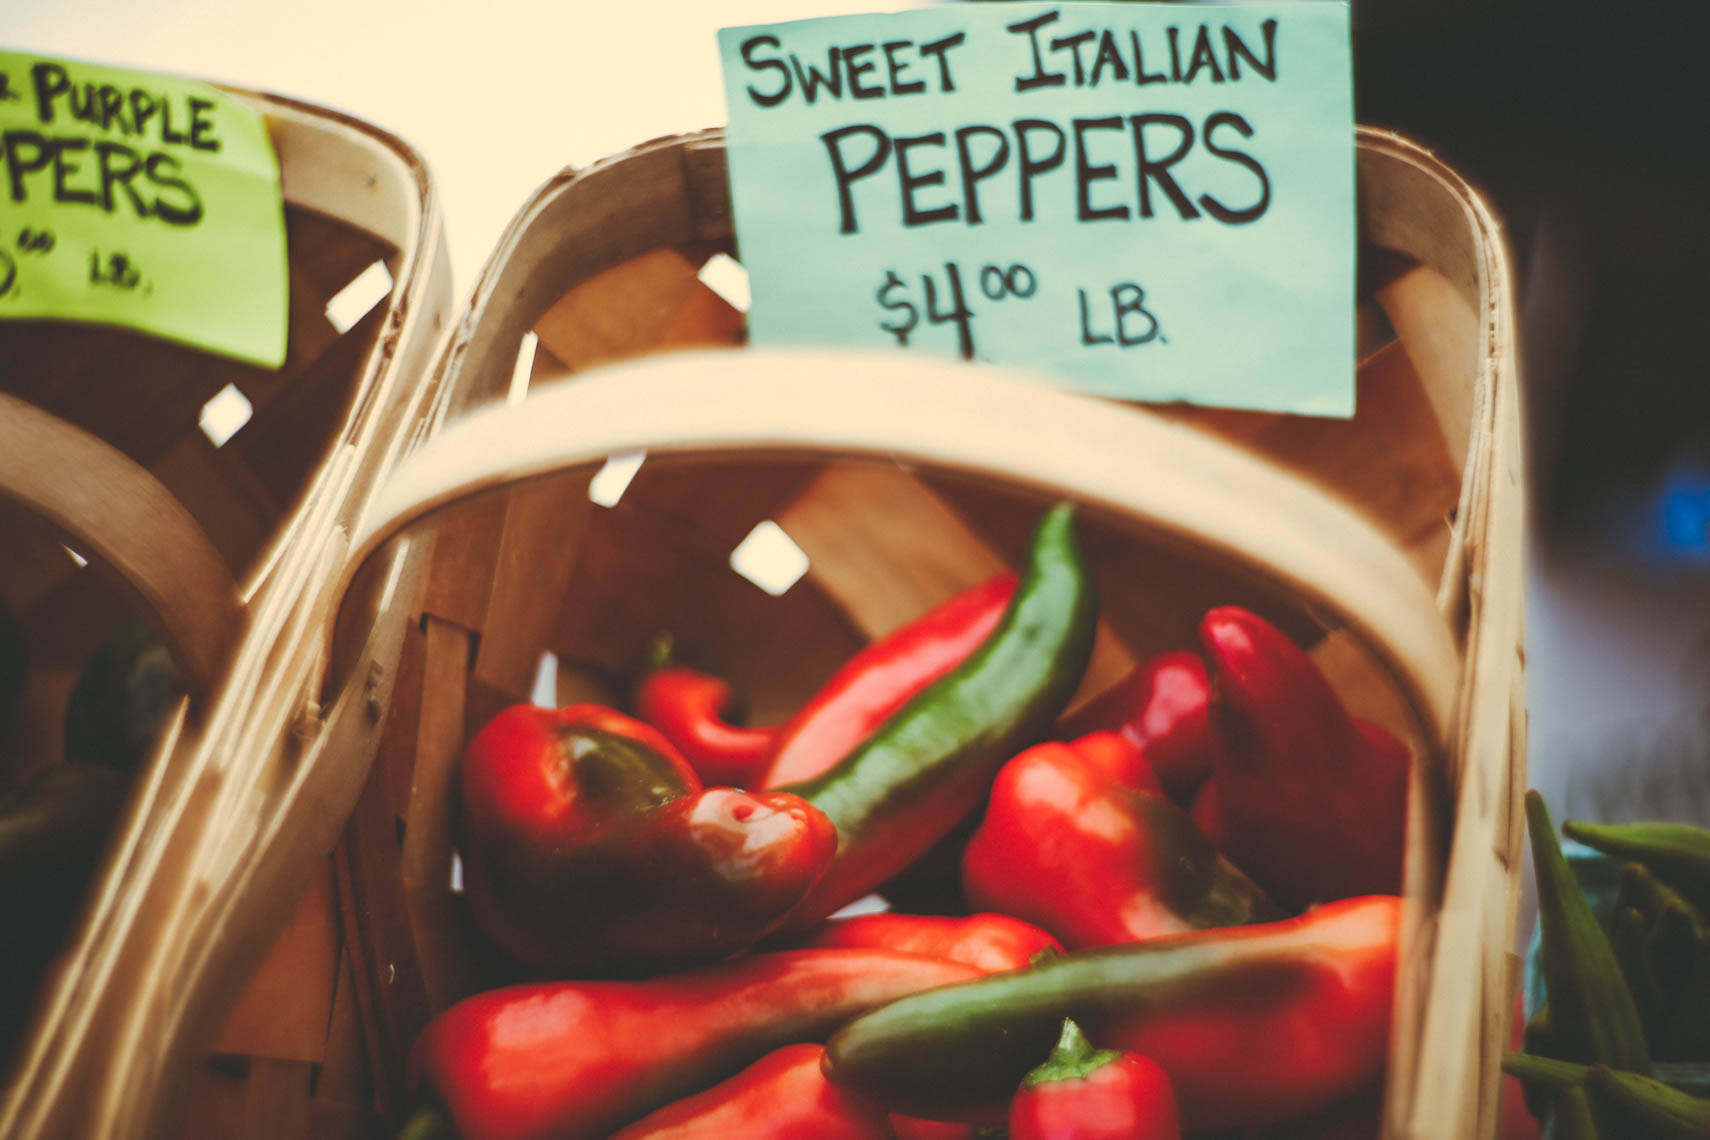 Sweet Italian peppers.